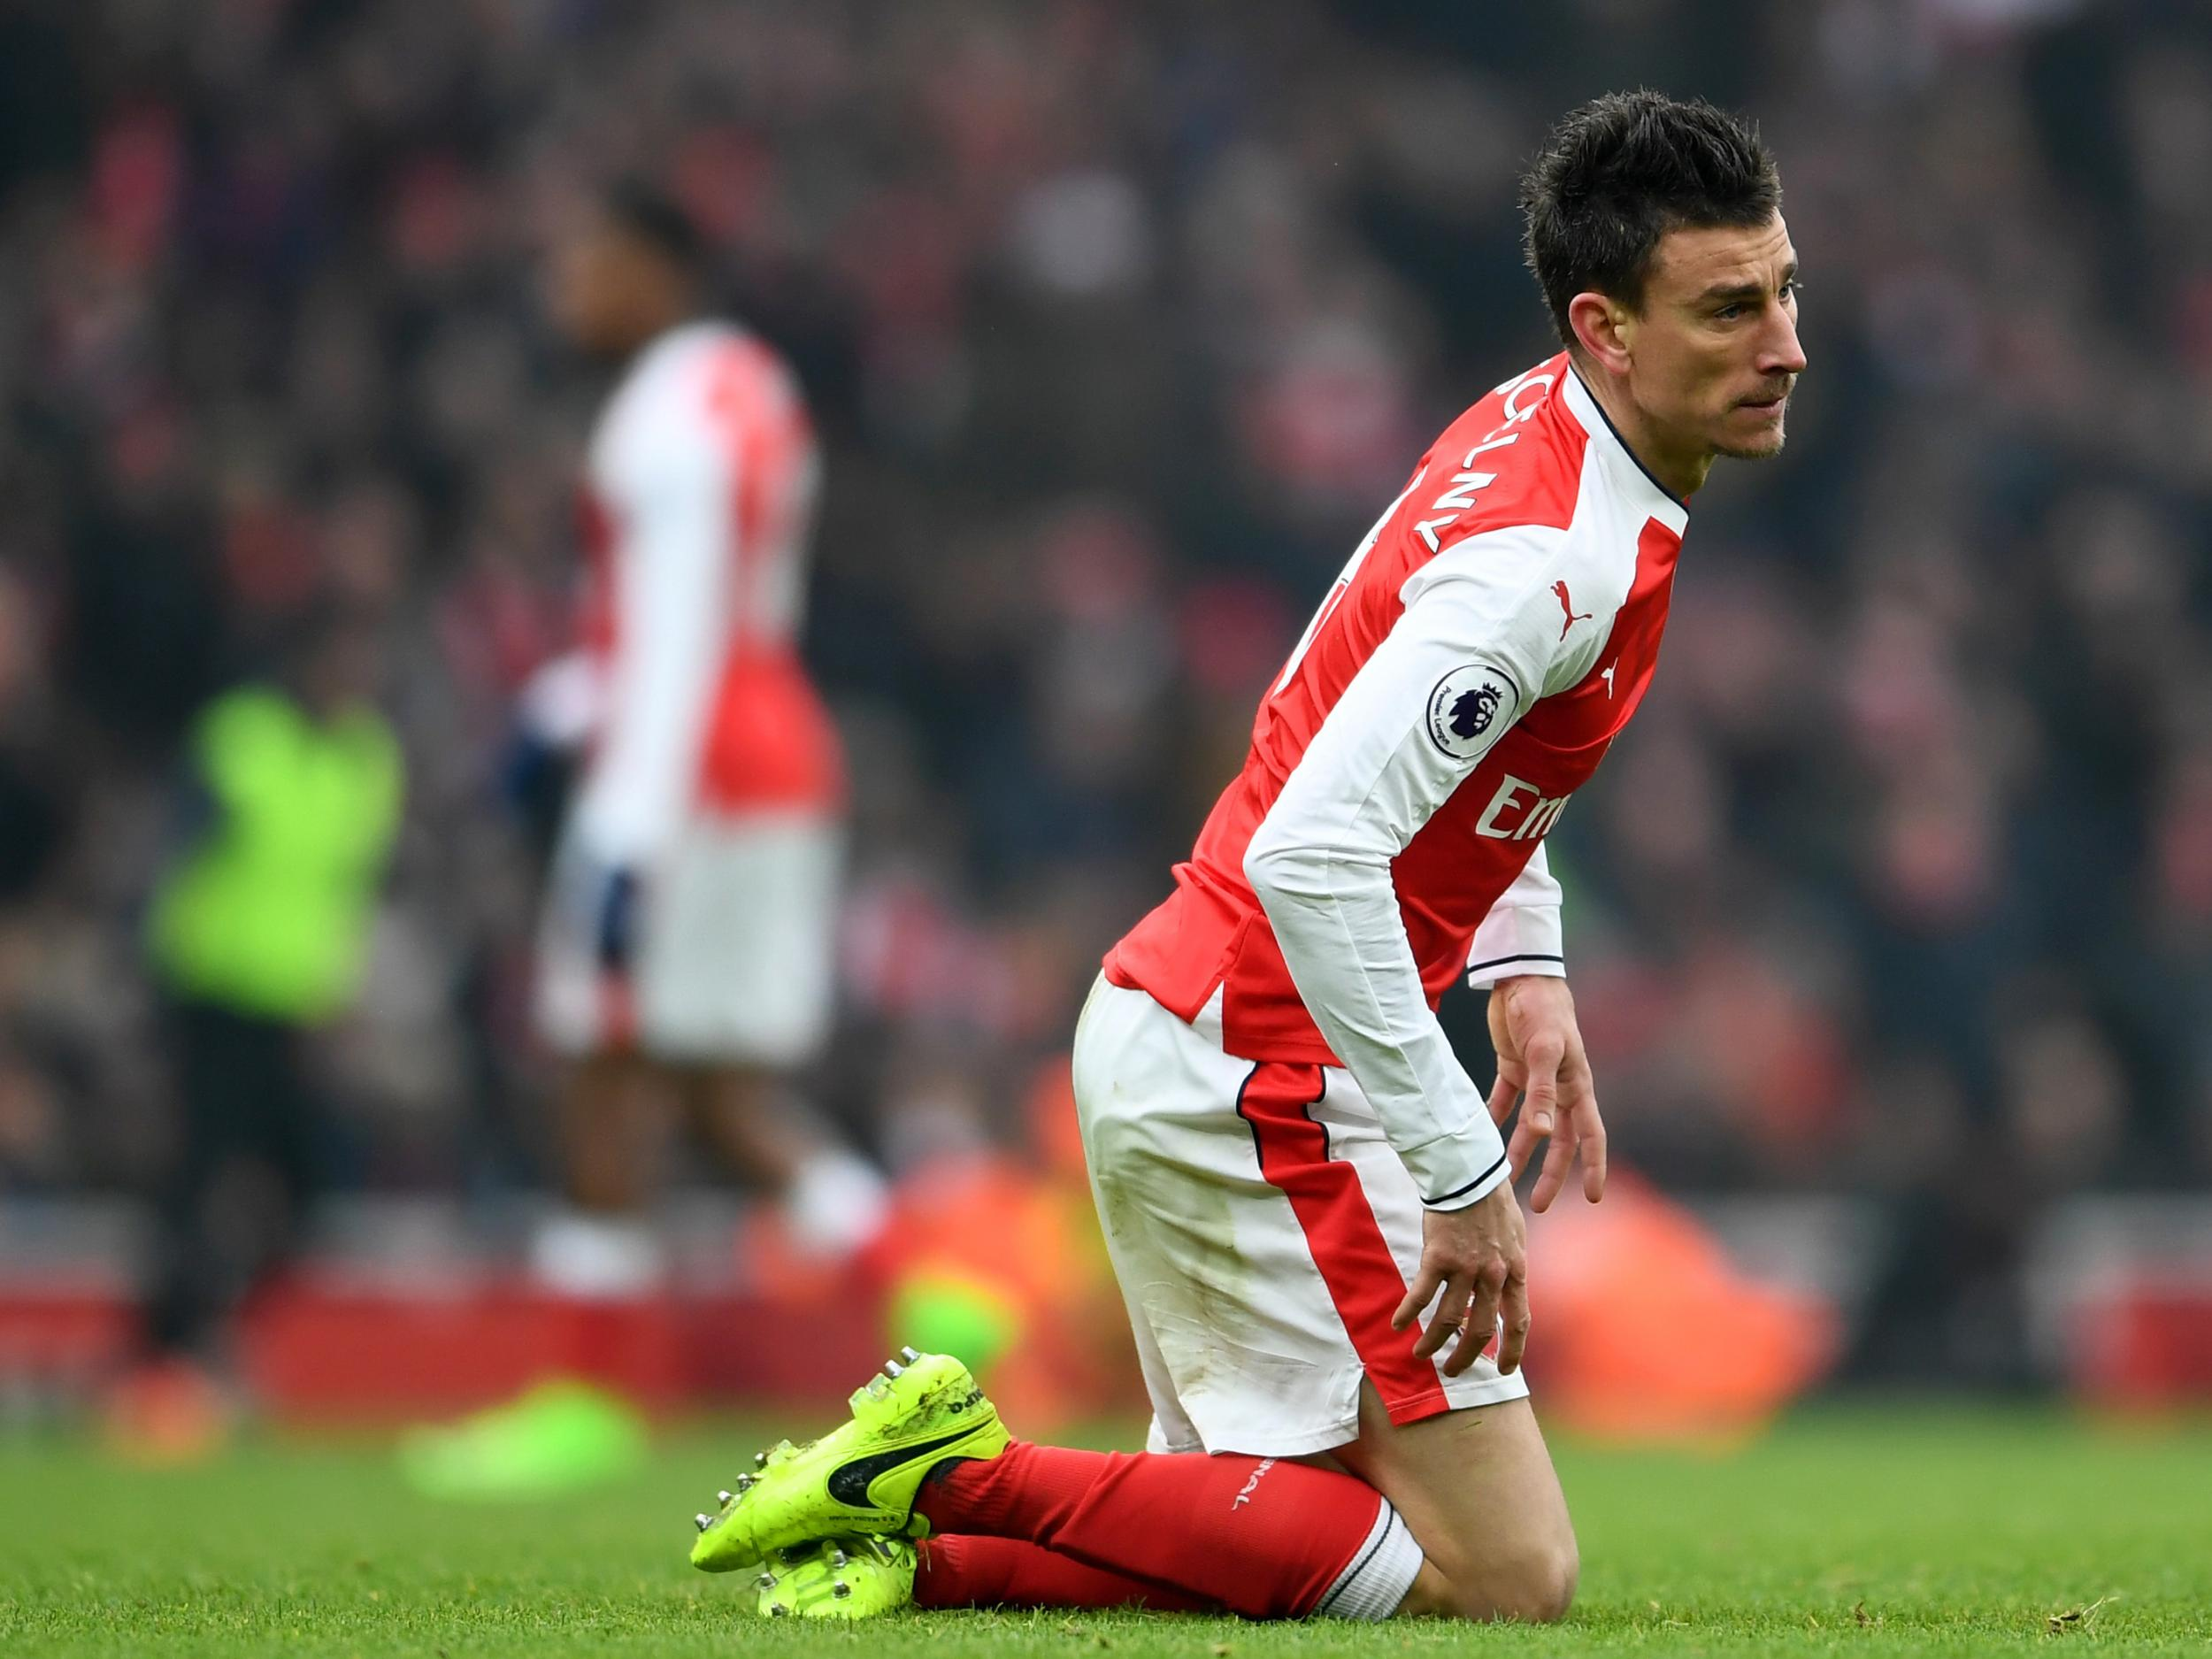 Arsenal defender Laurent Koscielny will need treatment everyday